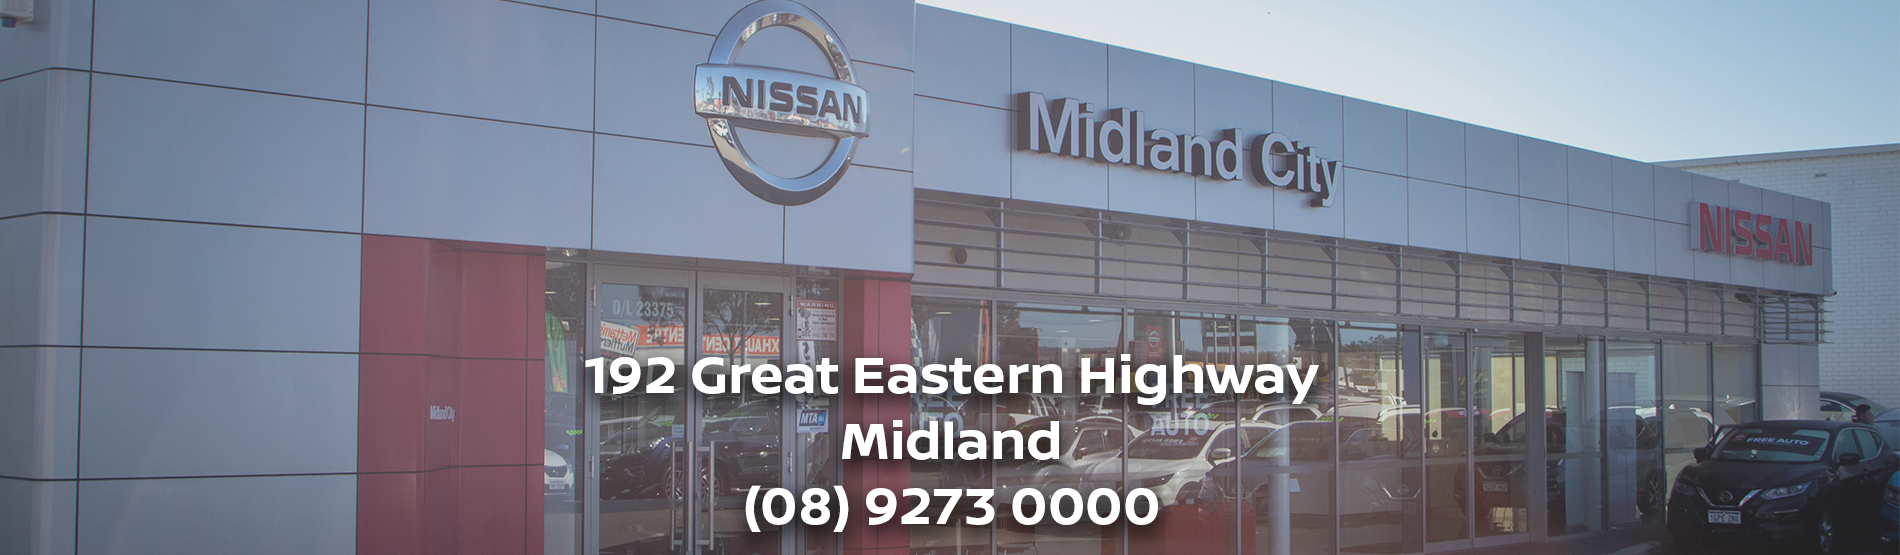 Midland City Nissan